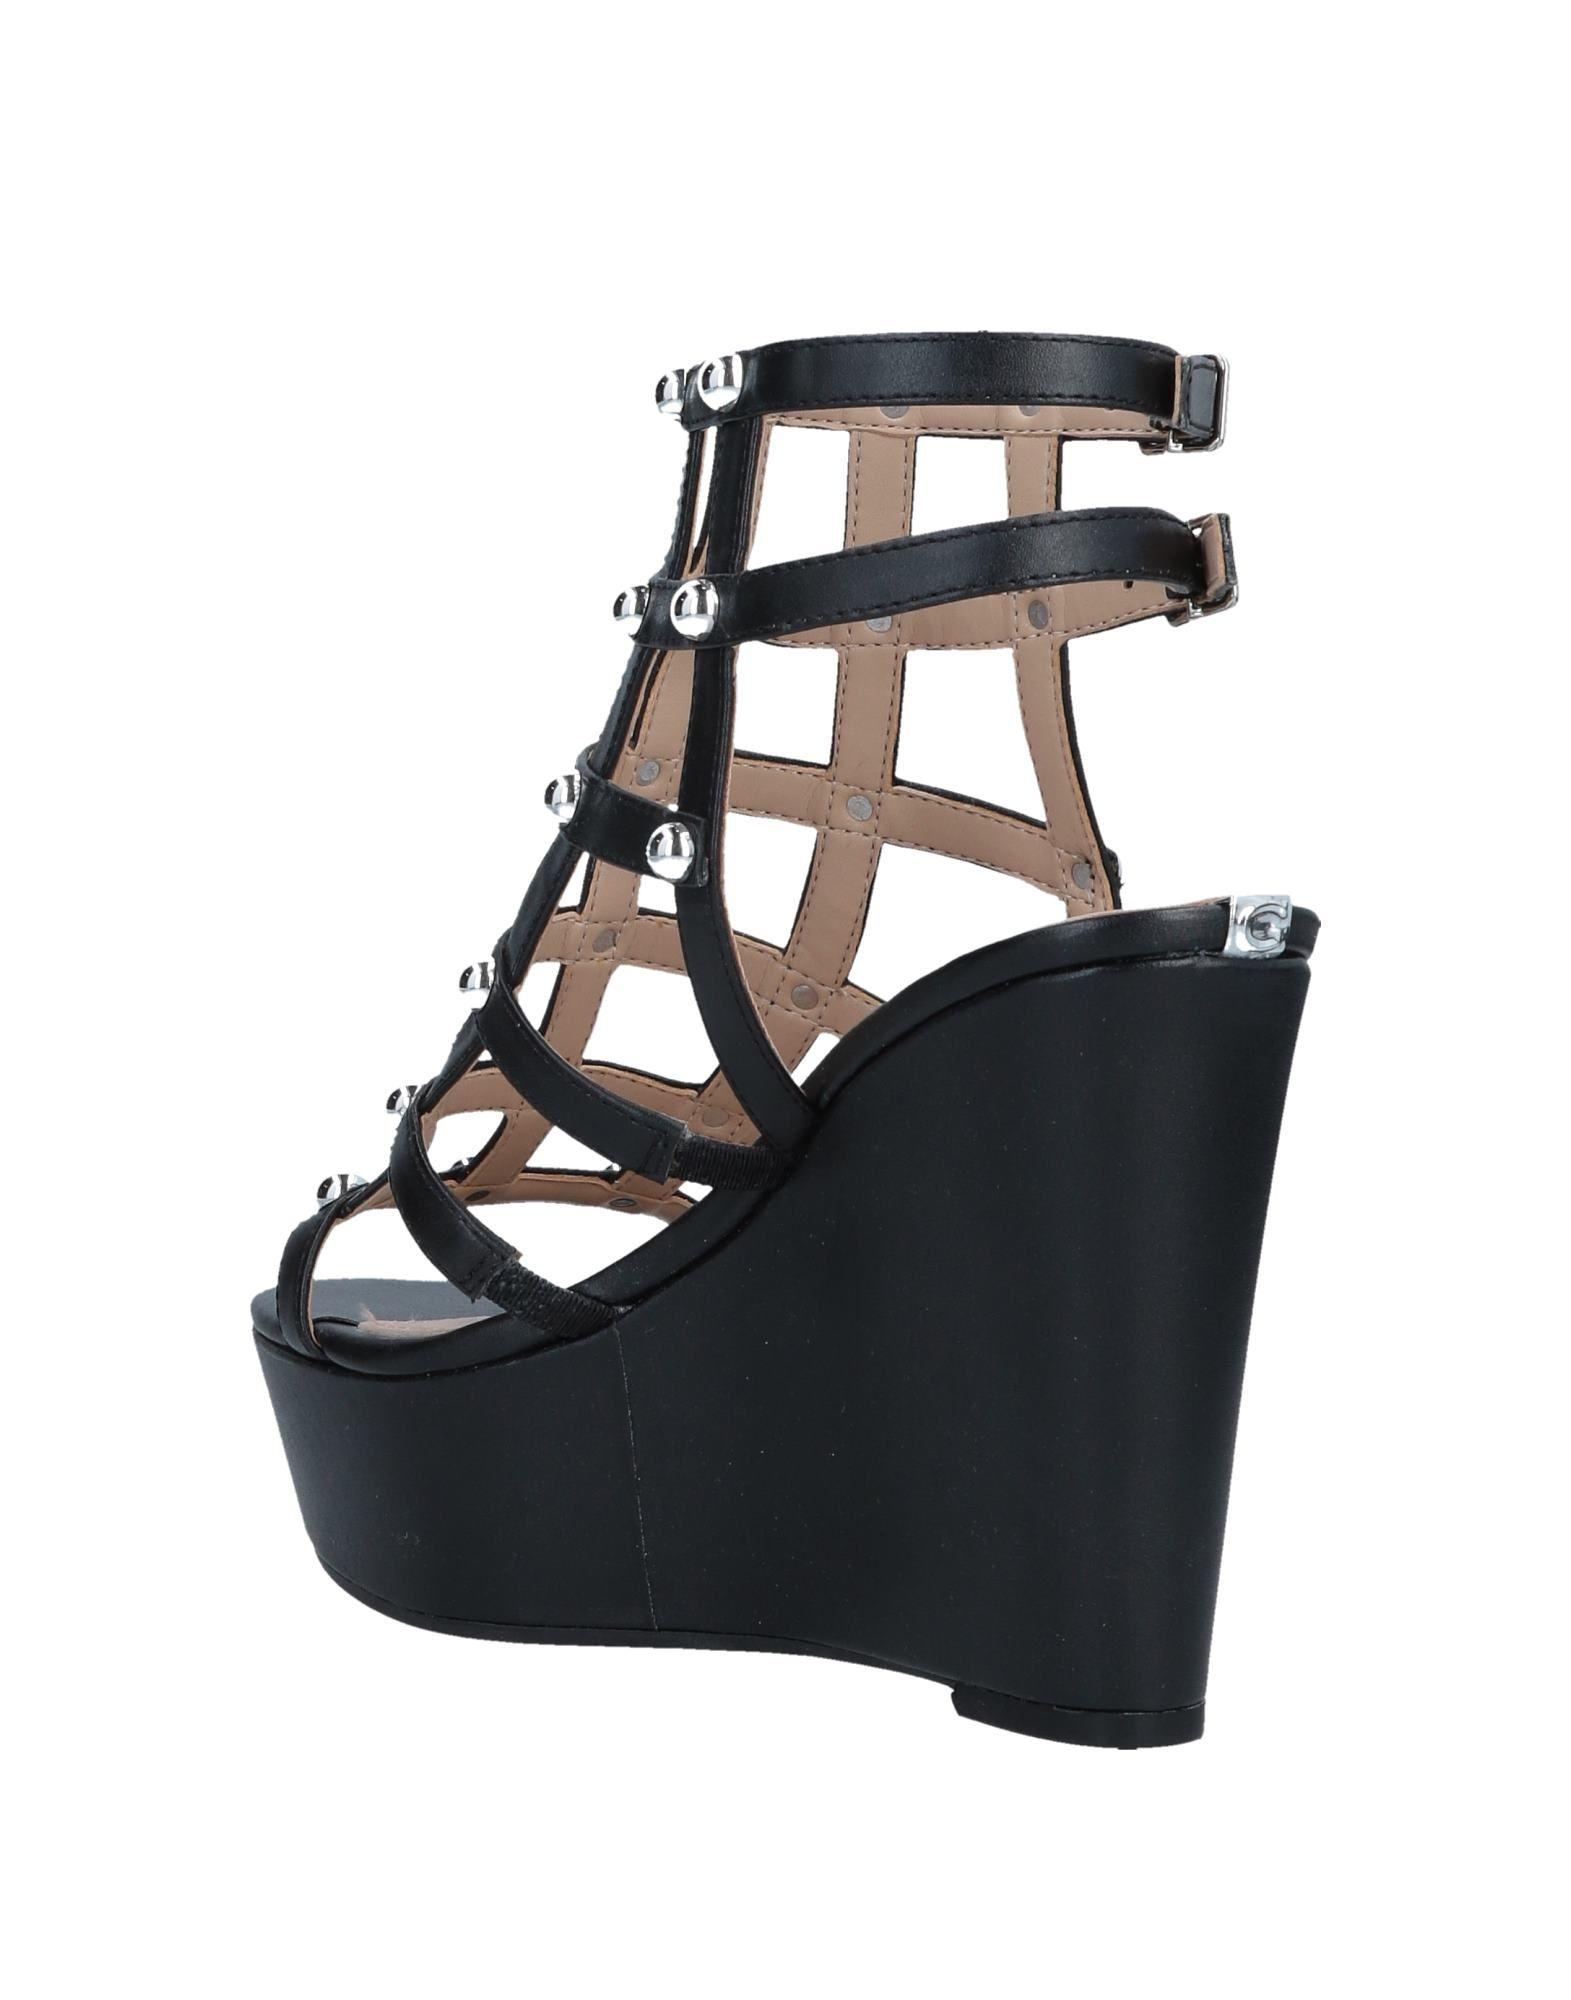 8ea59bbcc26862 Lyst - Guess Sandals in Black